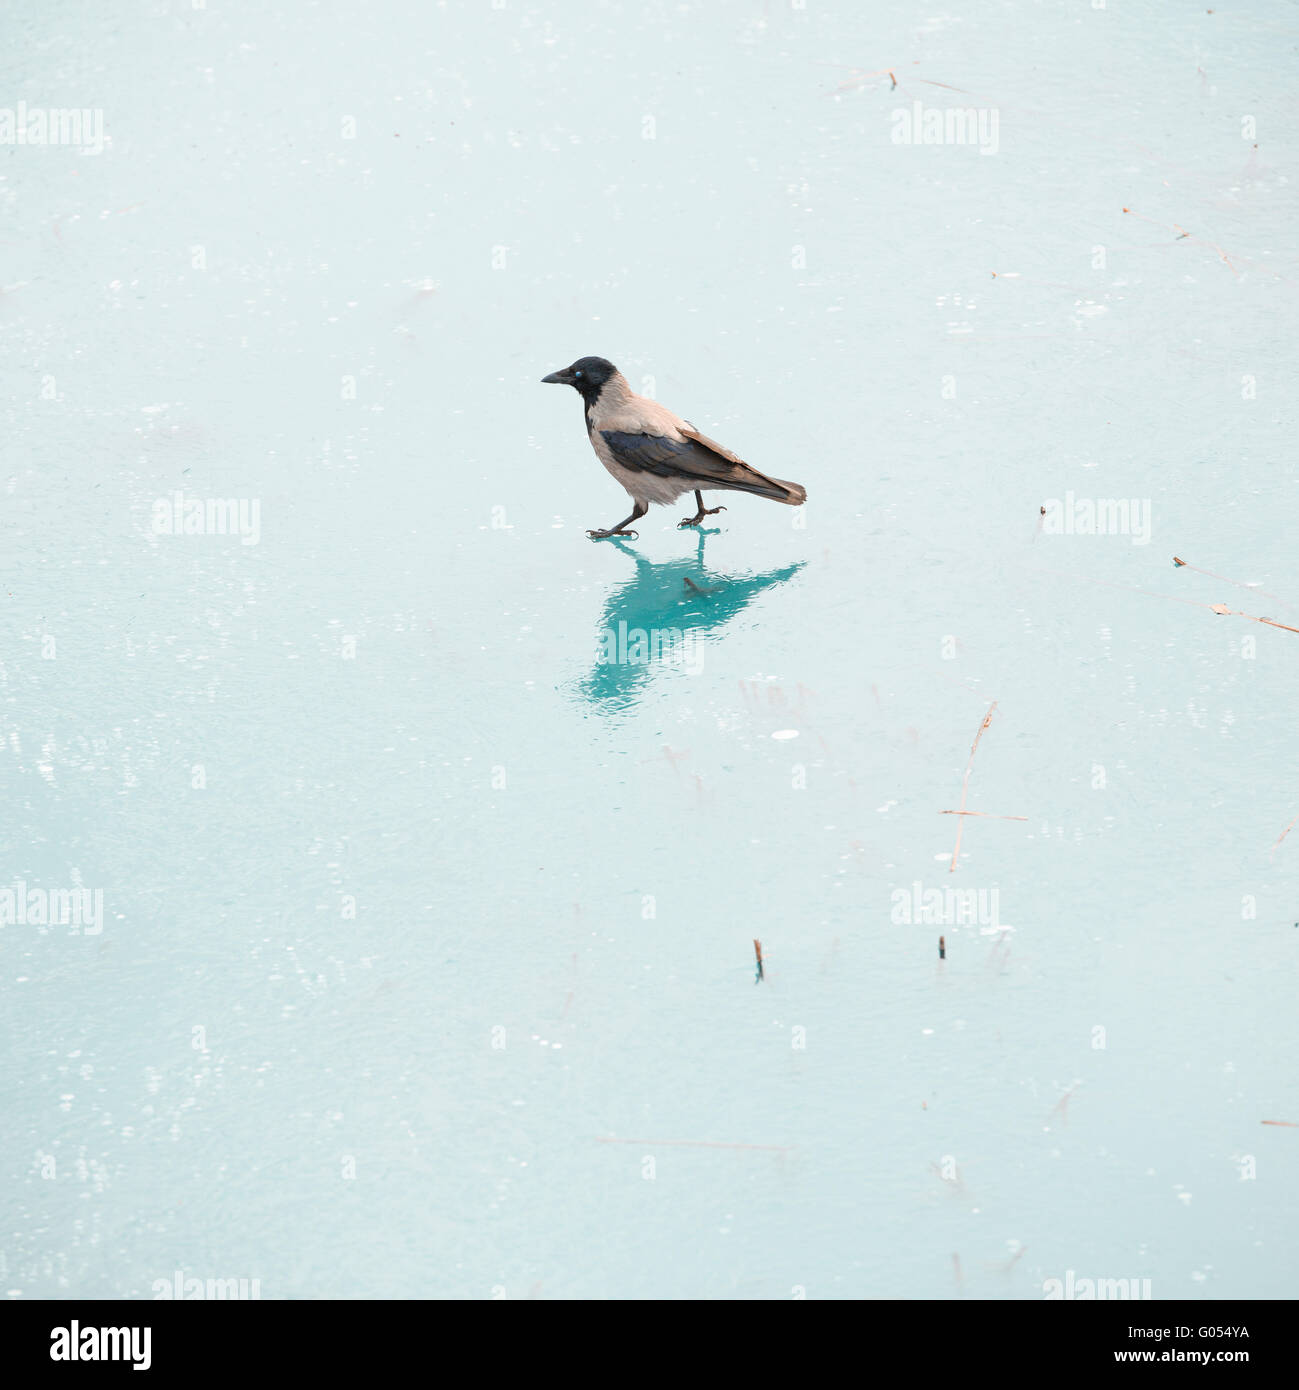 Crow walking on frozen lake. One lone bird cope with winter searching for food on the ice. Symbol of simplicity - Stock Image